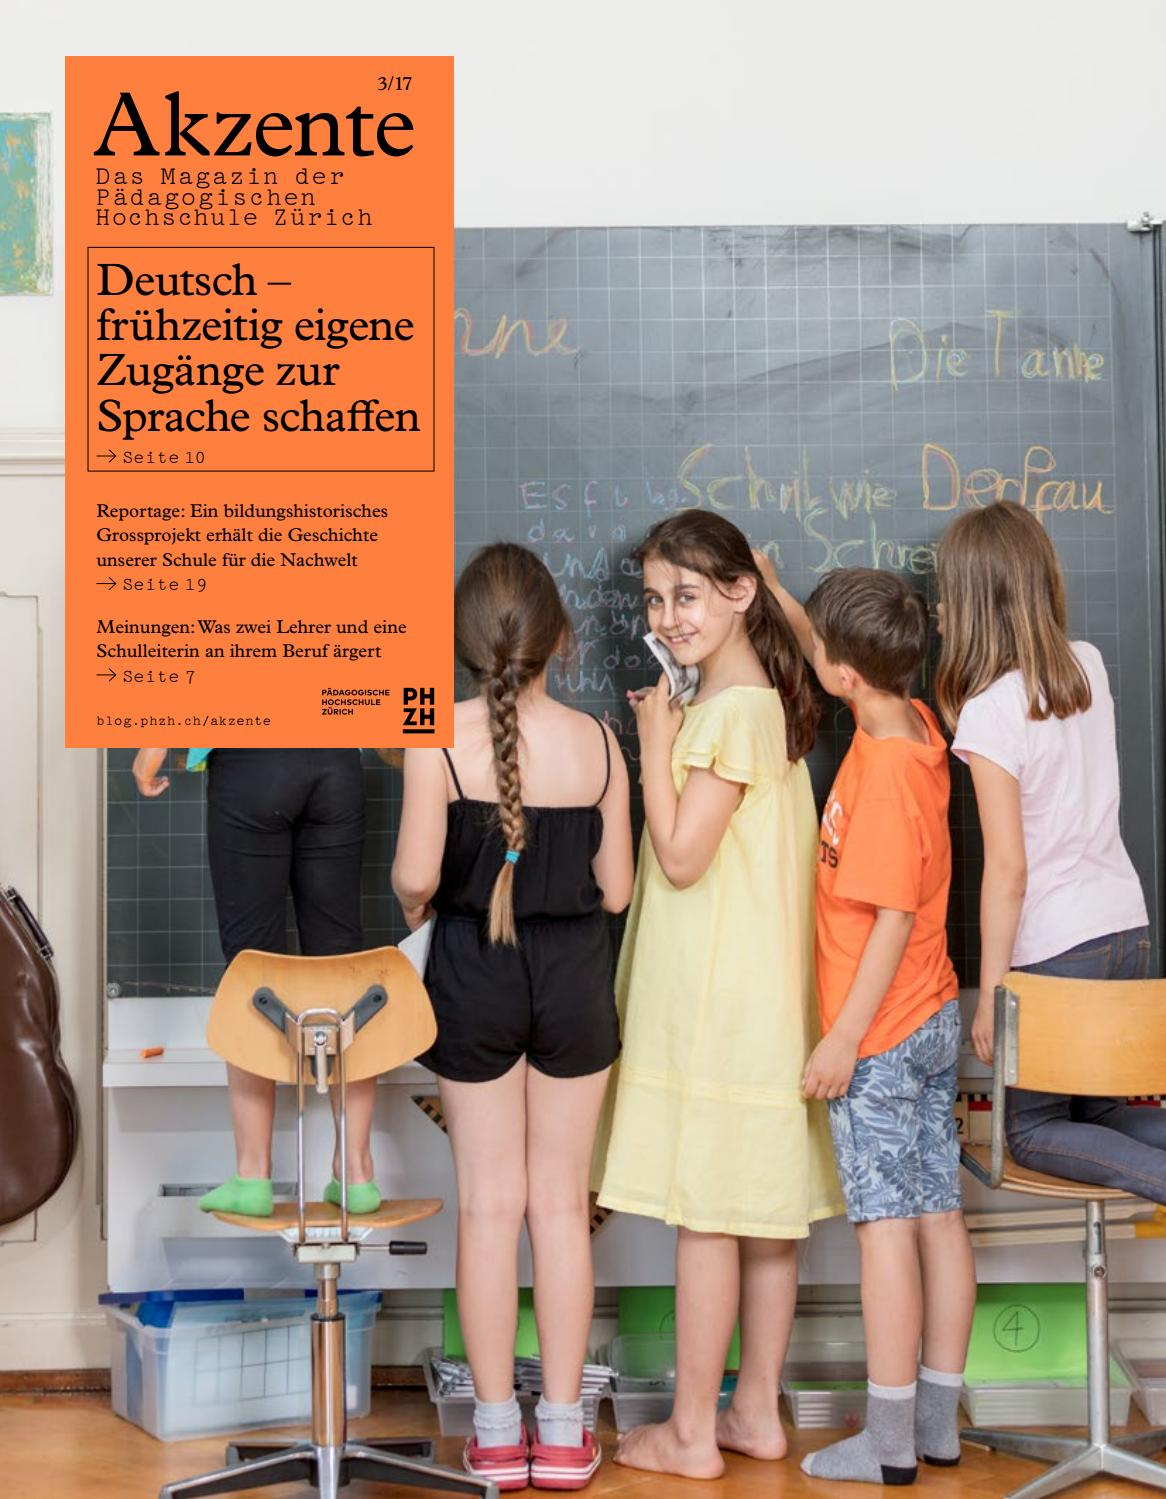 Akzente 3/2017 by PH Zürich - issuu